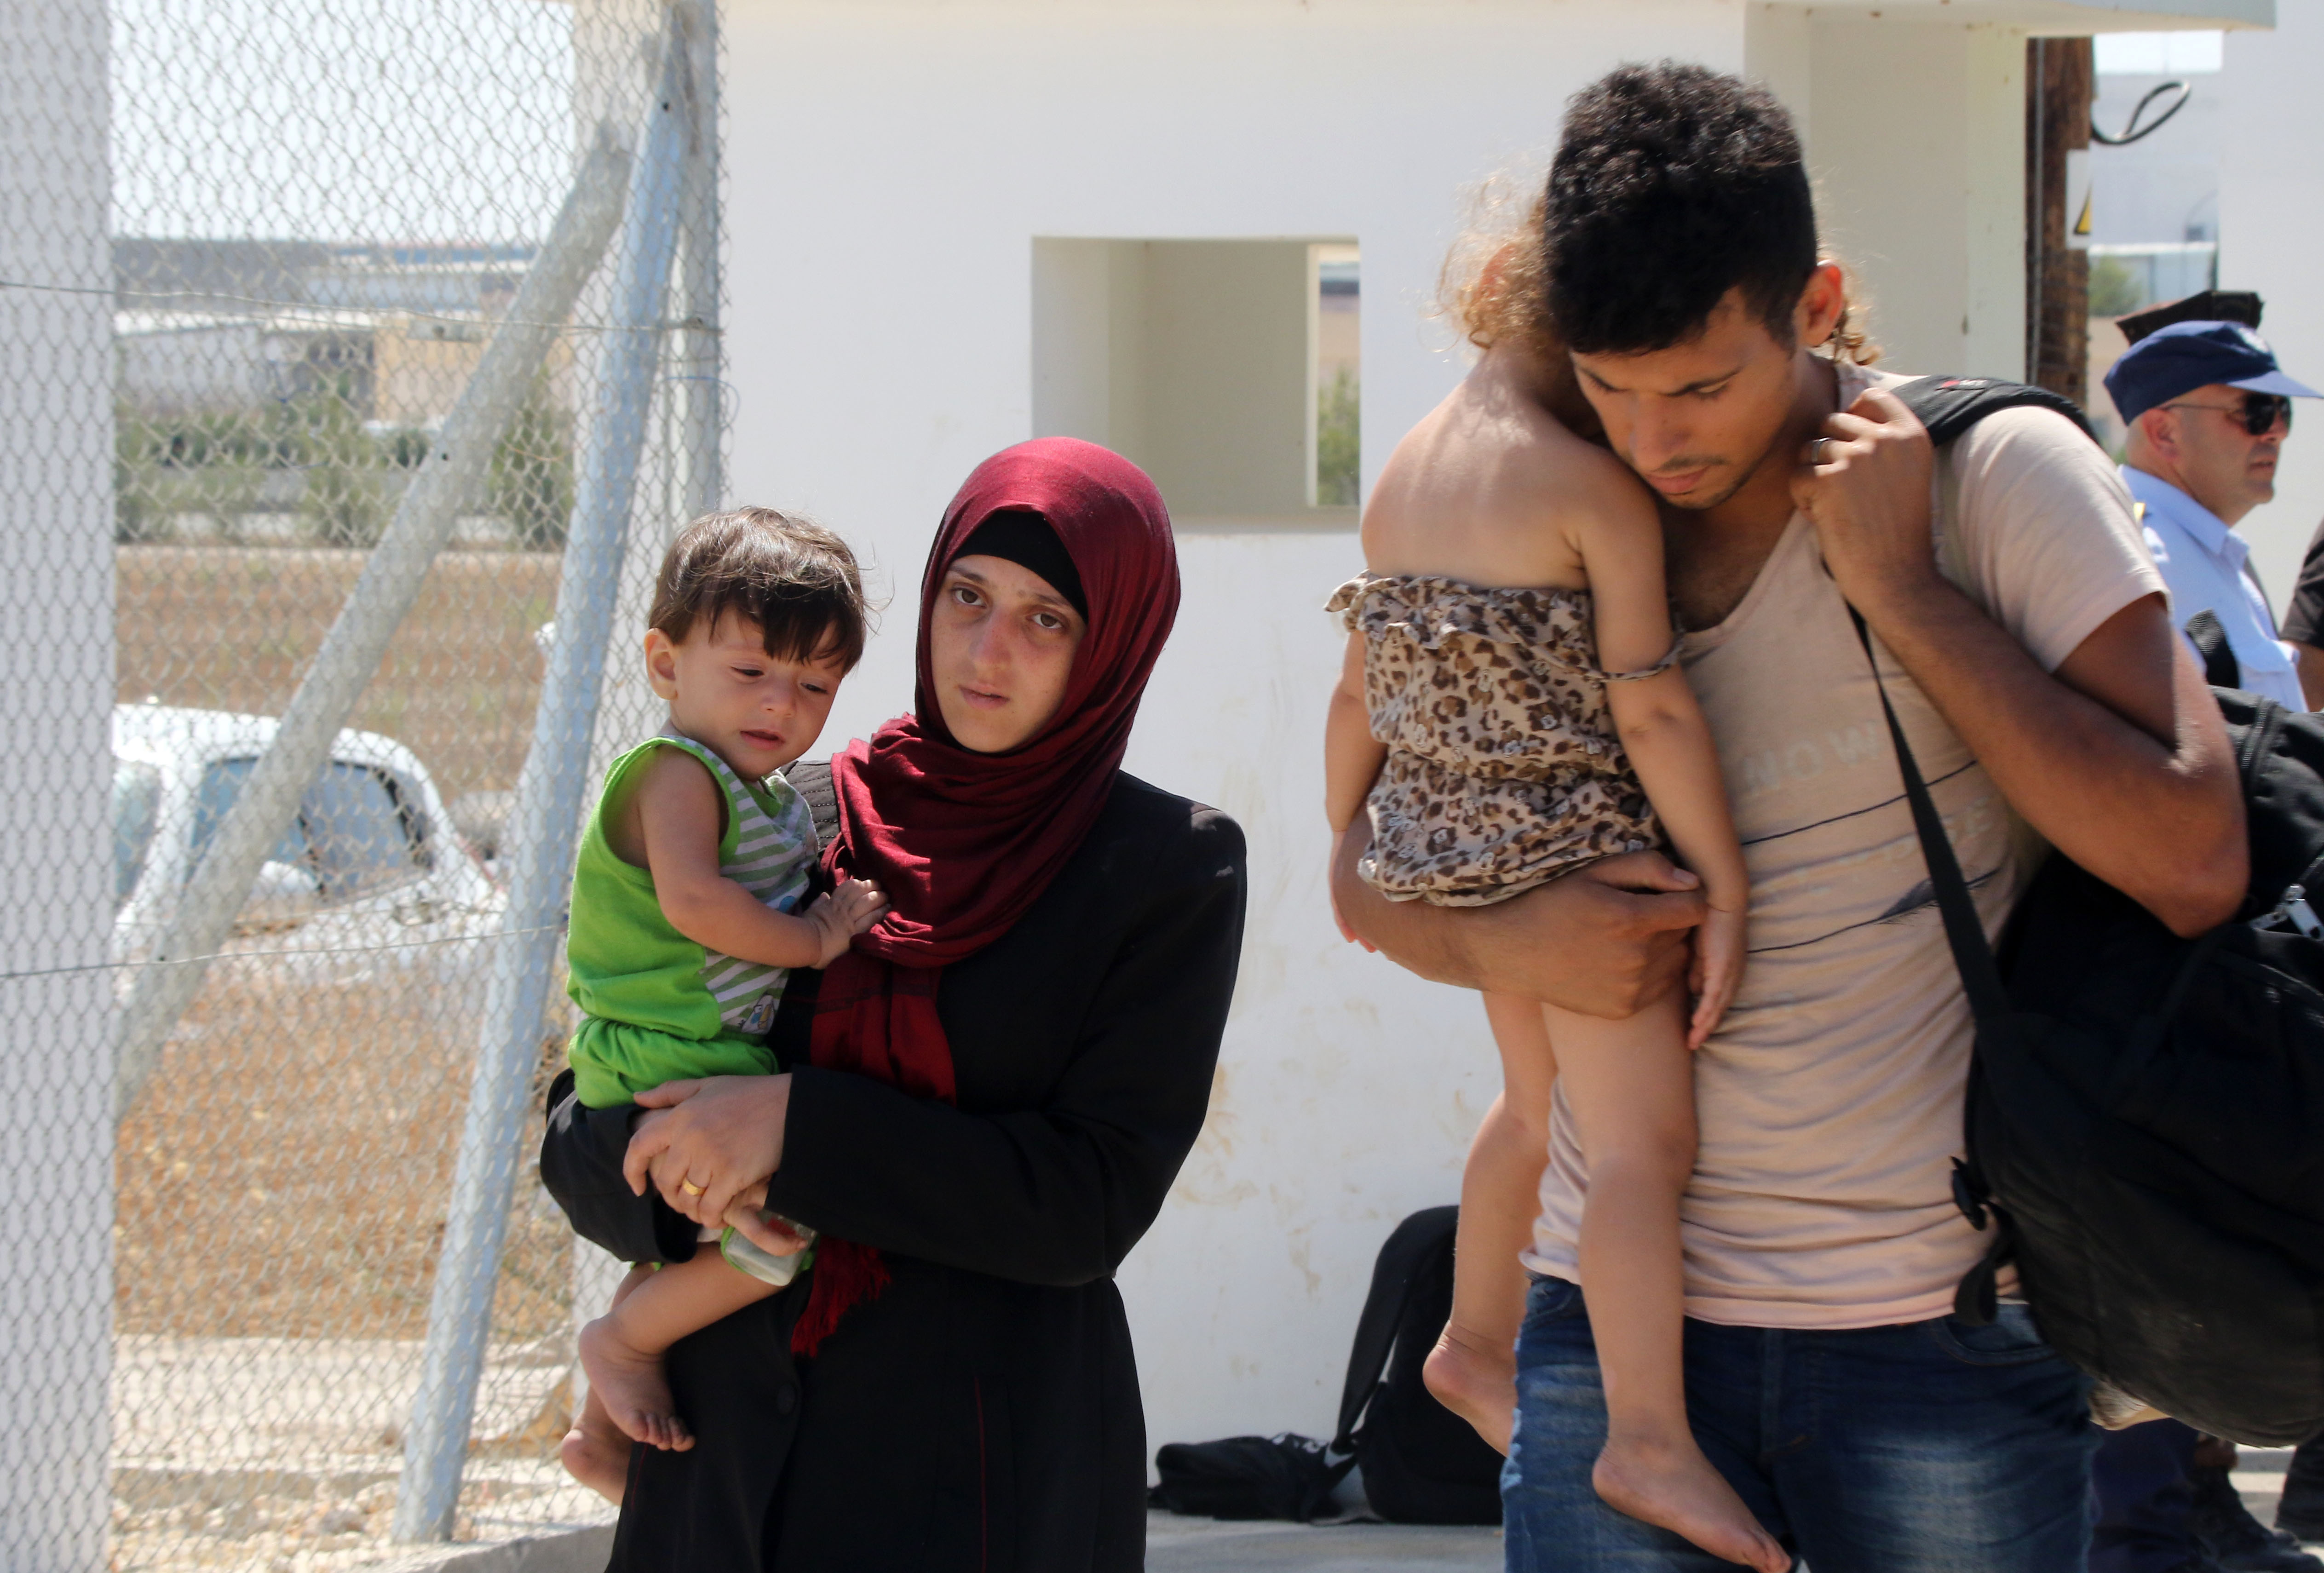 115 refugees saved by Cyprus authorities